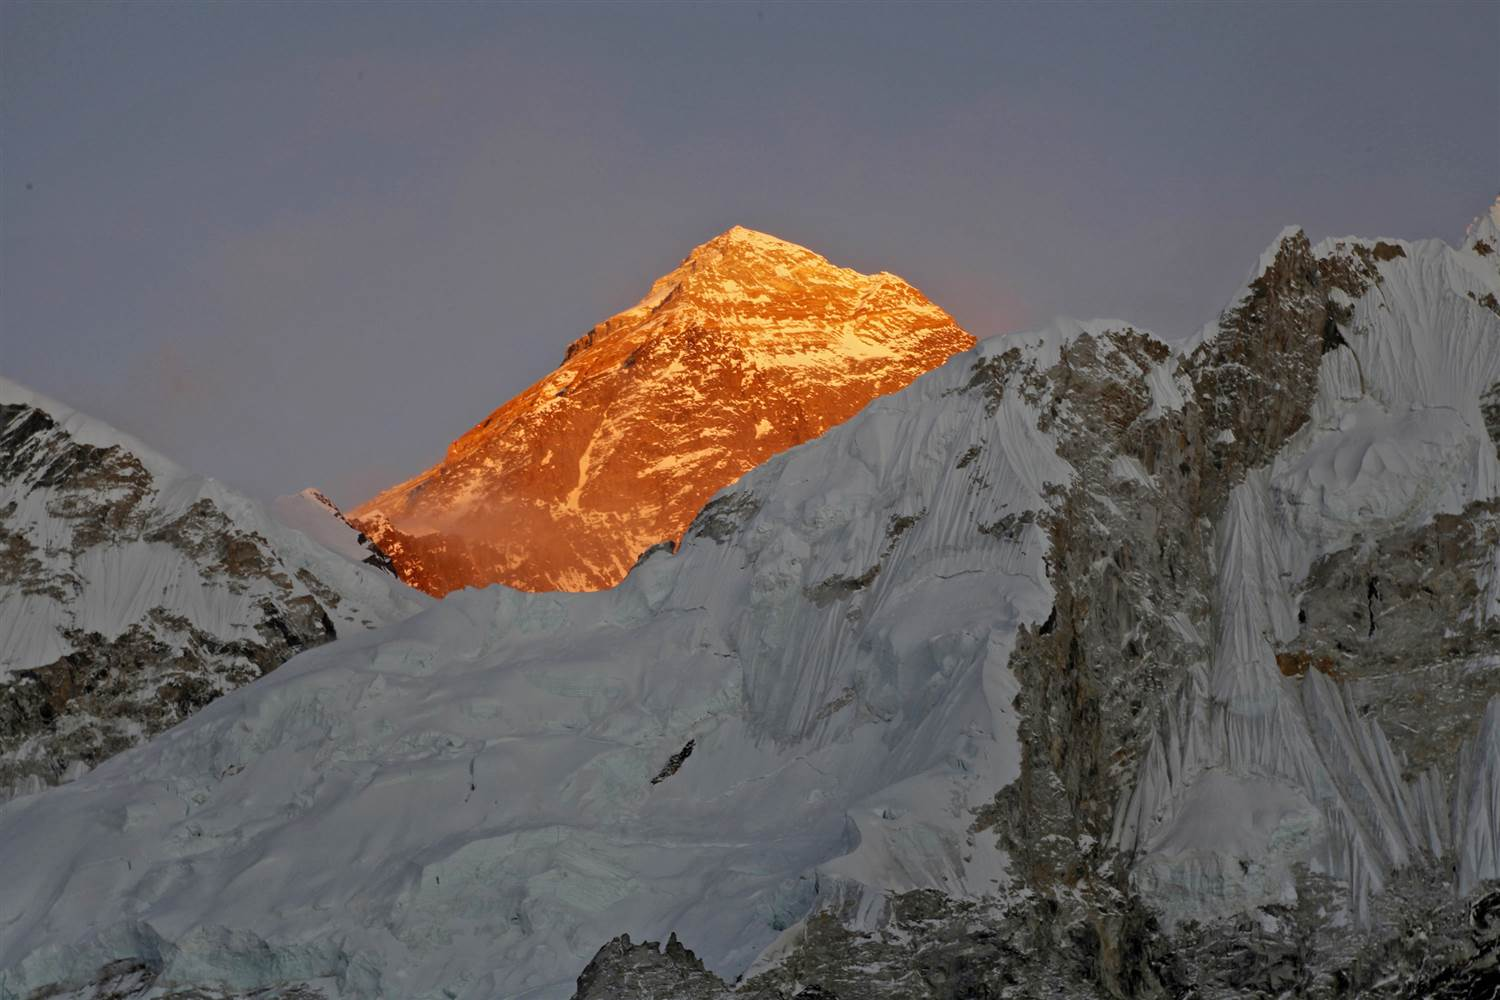 Dutch, Australian Climbers Die After Reaching Everest Summit